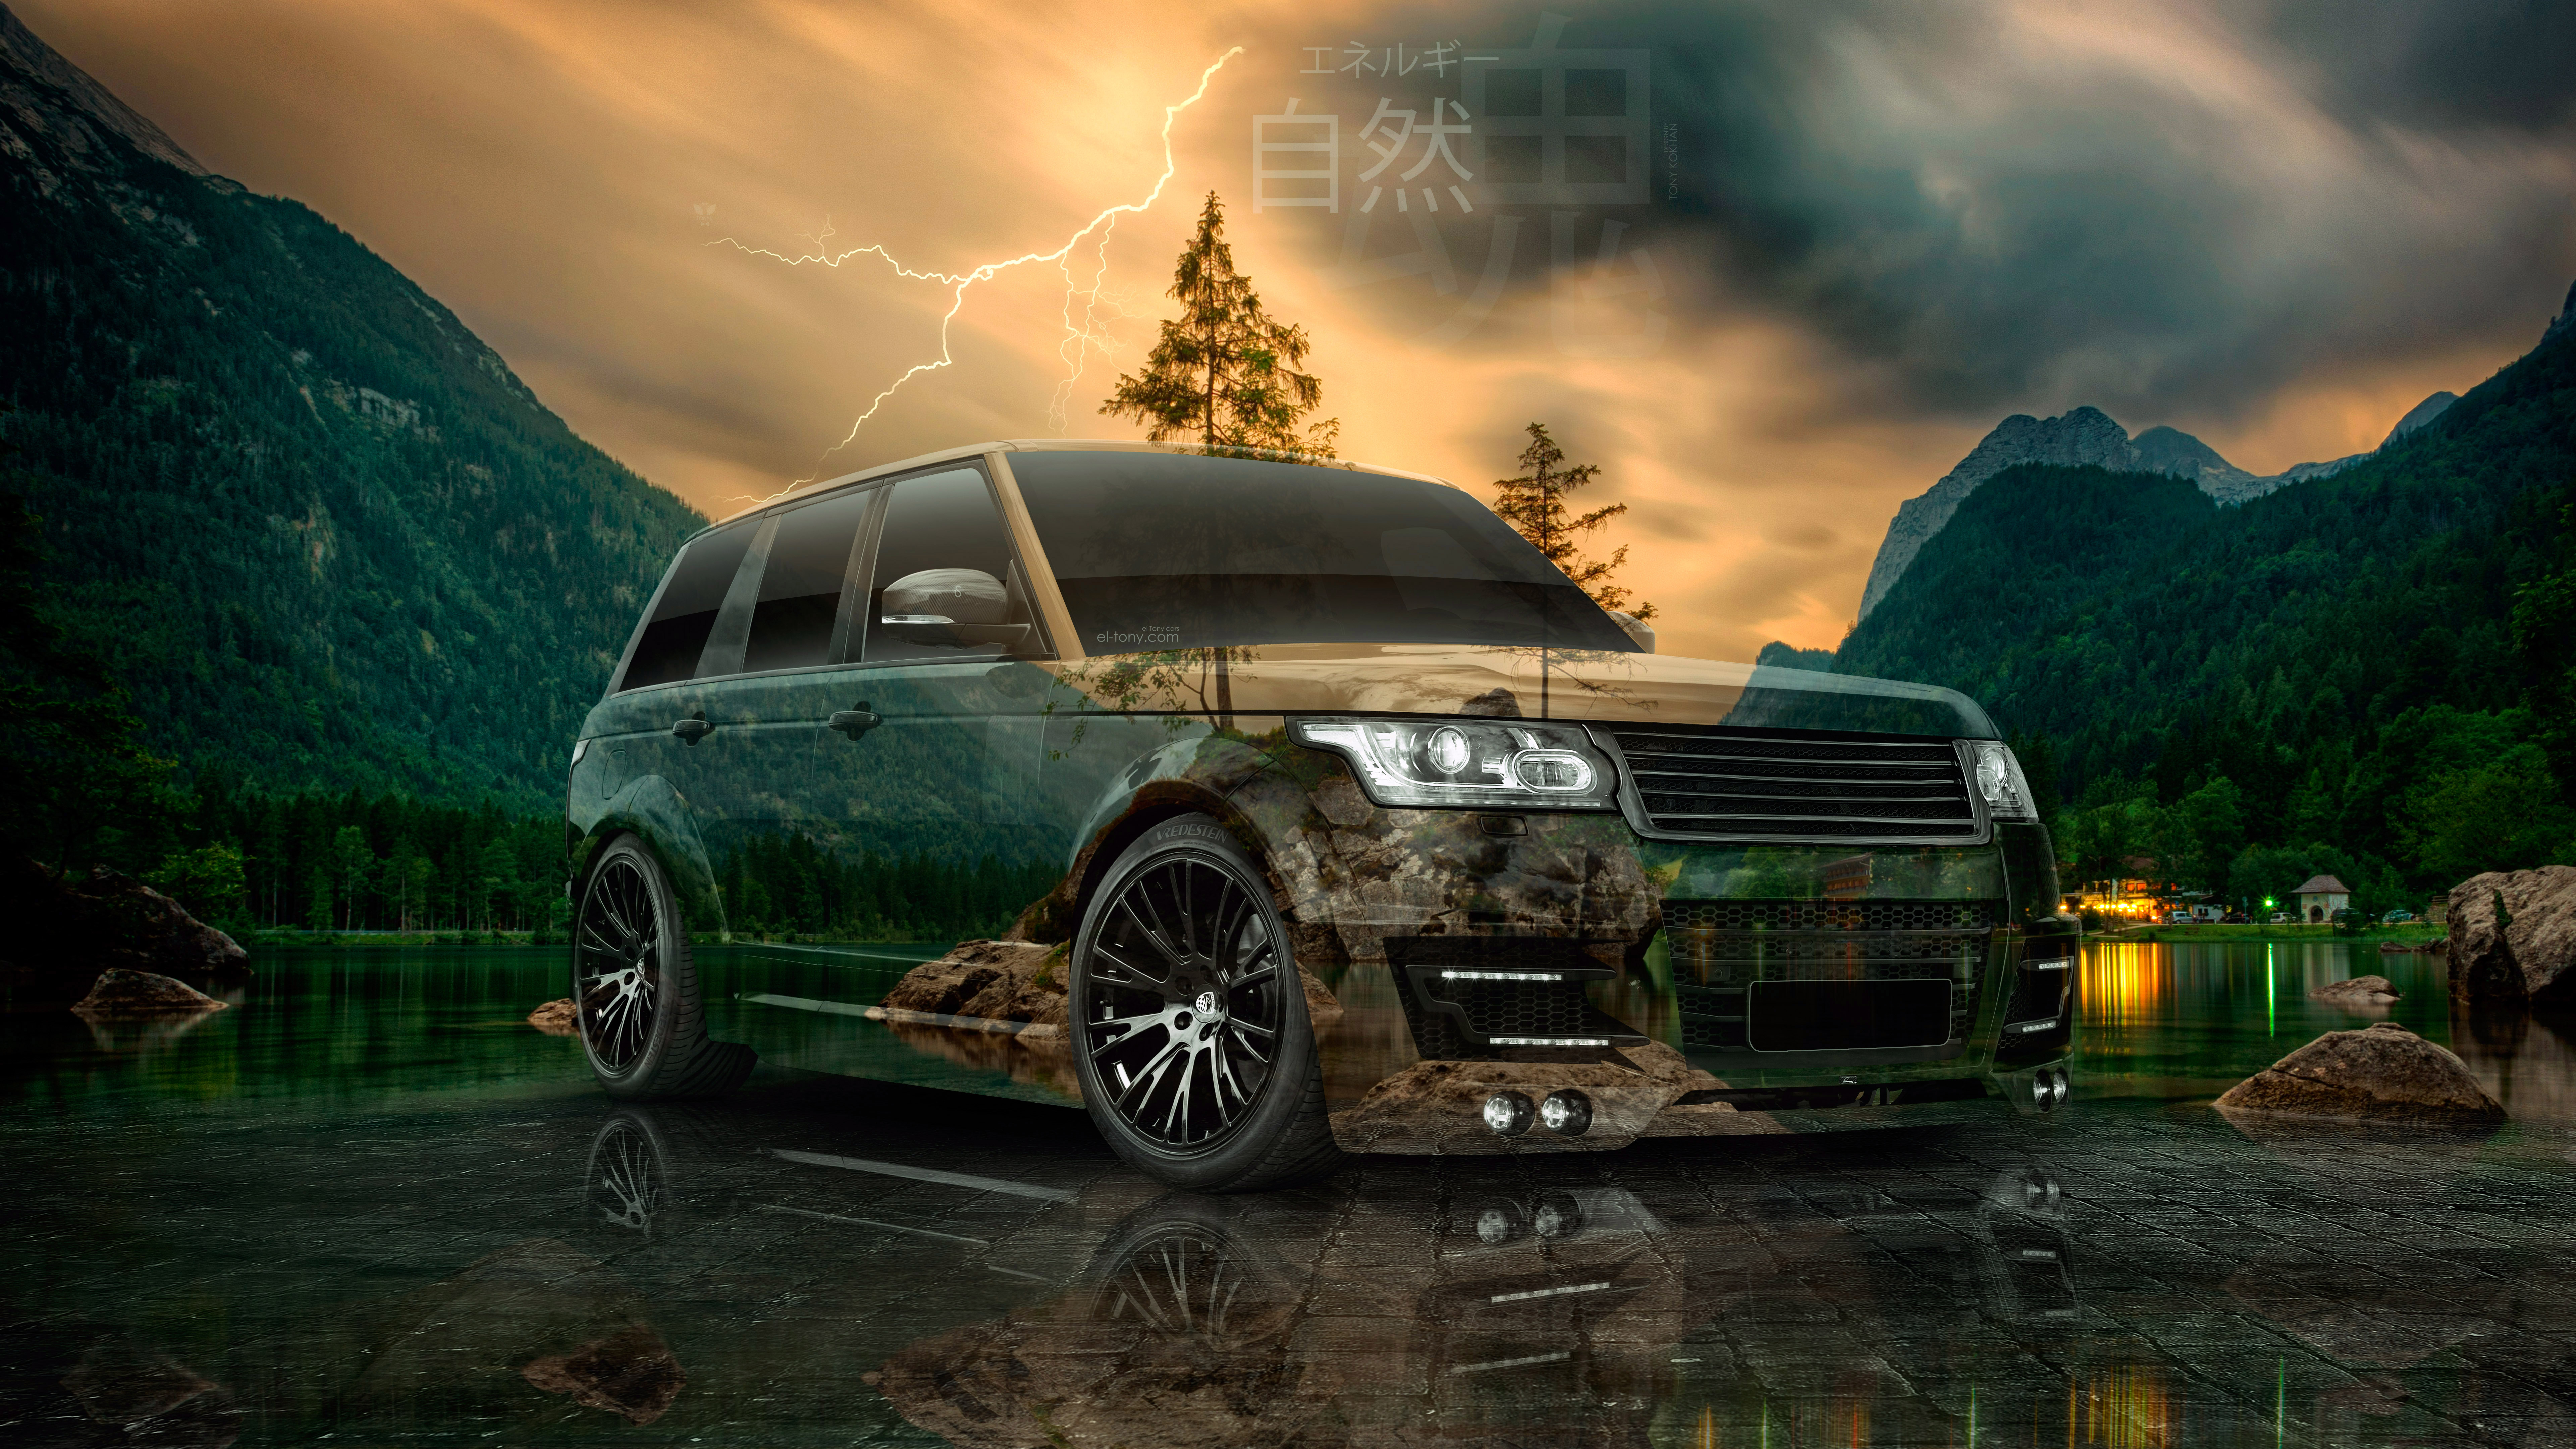 Land-Rover-Range-Rover-Tuning-Lumma-Super-Crystal-Mountains-Lightning-Lake-Soul-Nature-Energy-Car-2020-Multicolors-8K-Wallpapers-by-Tony-Kokhan-www.el-tony.com-image